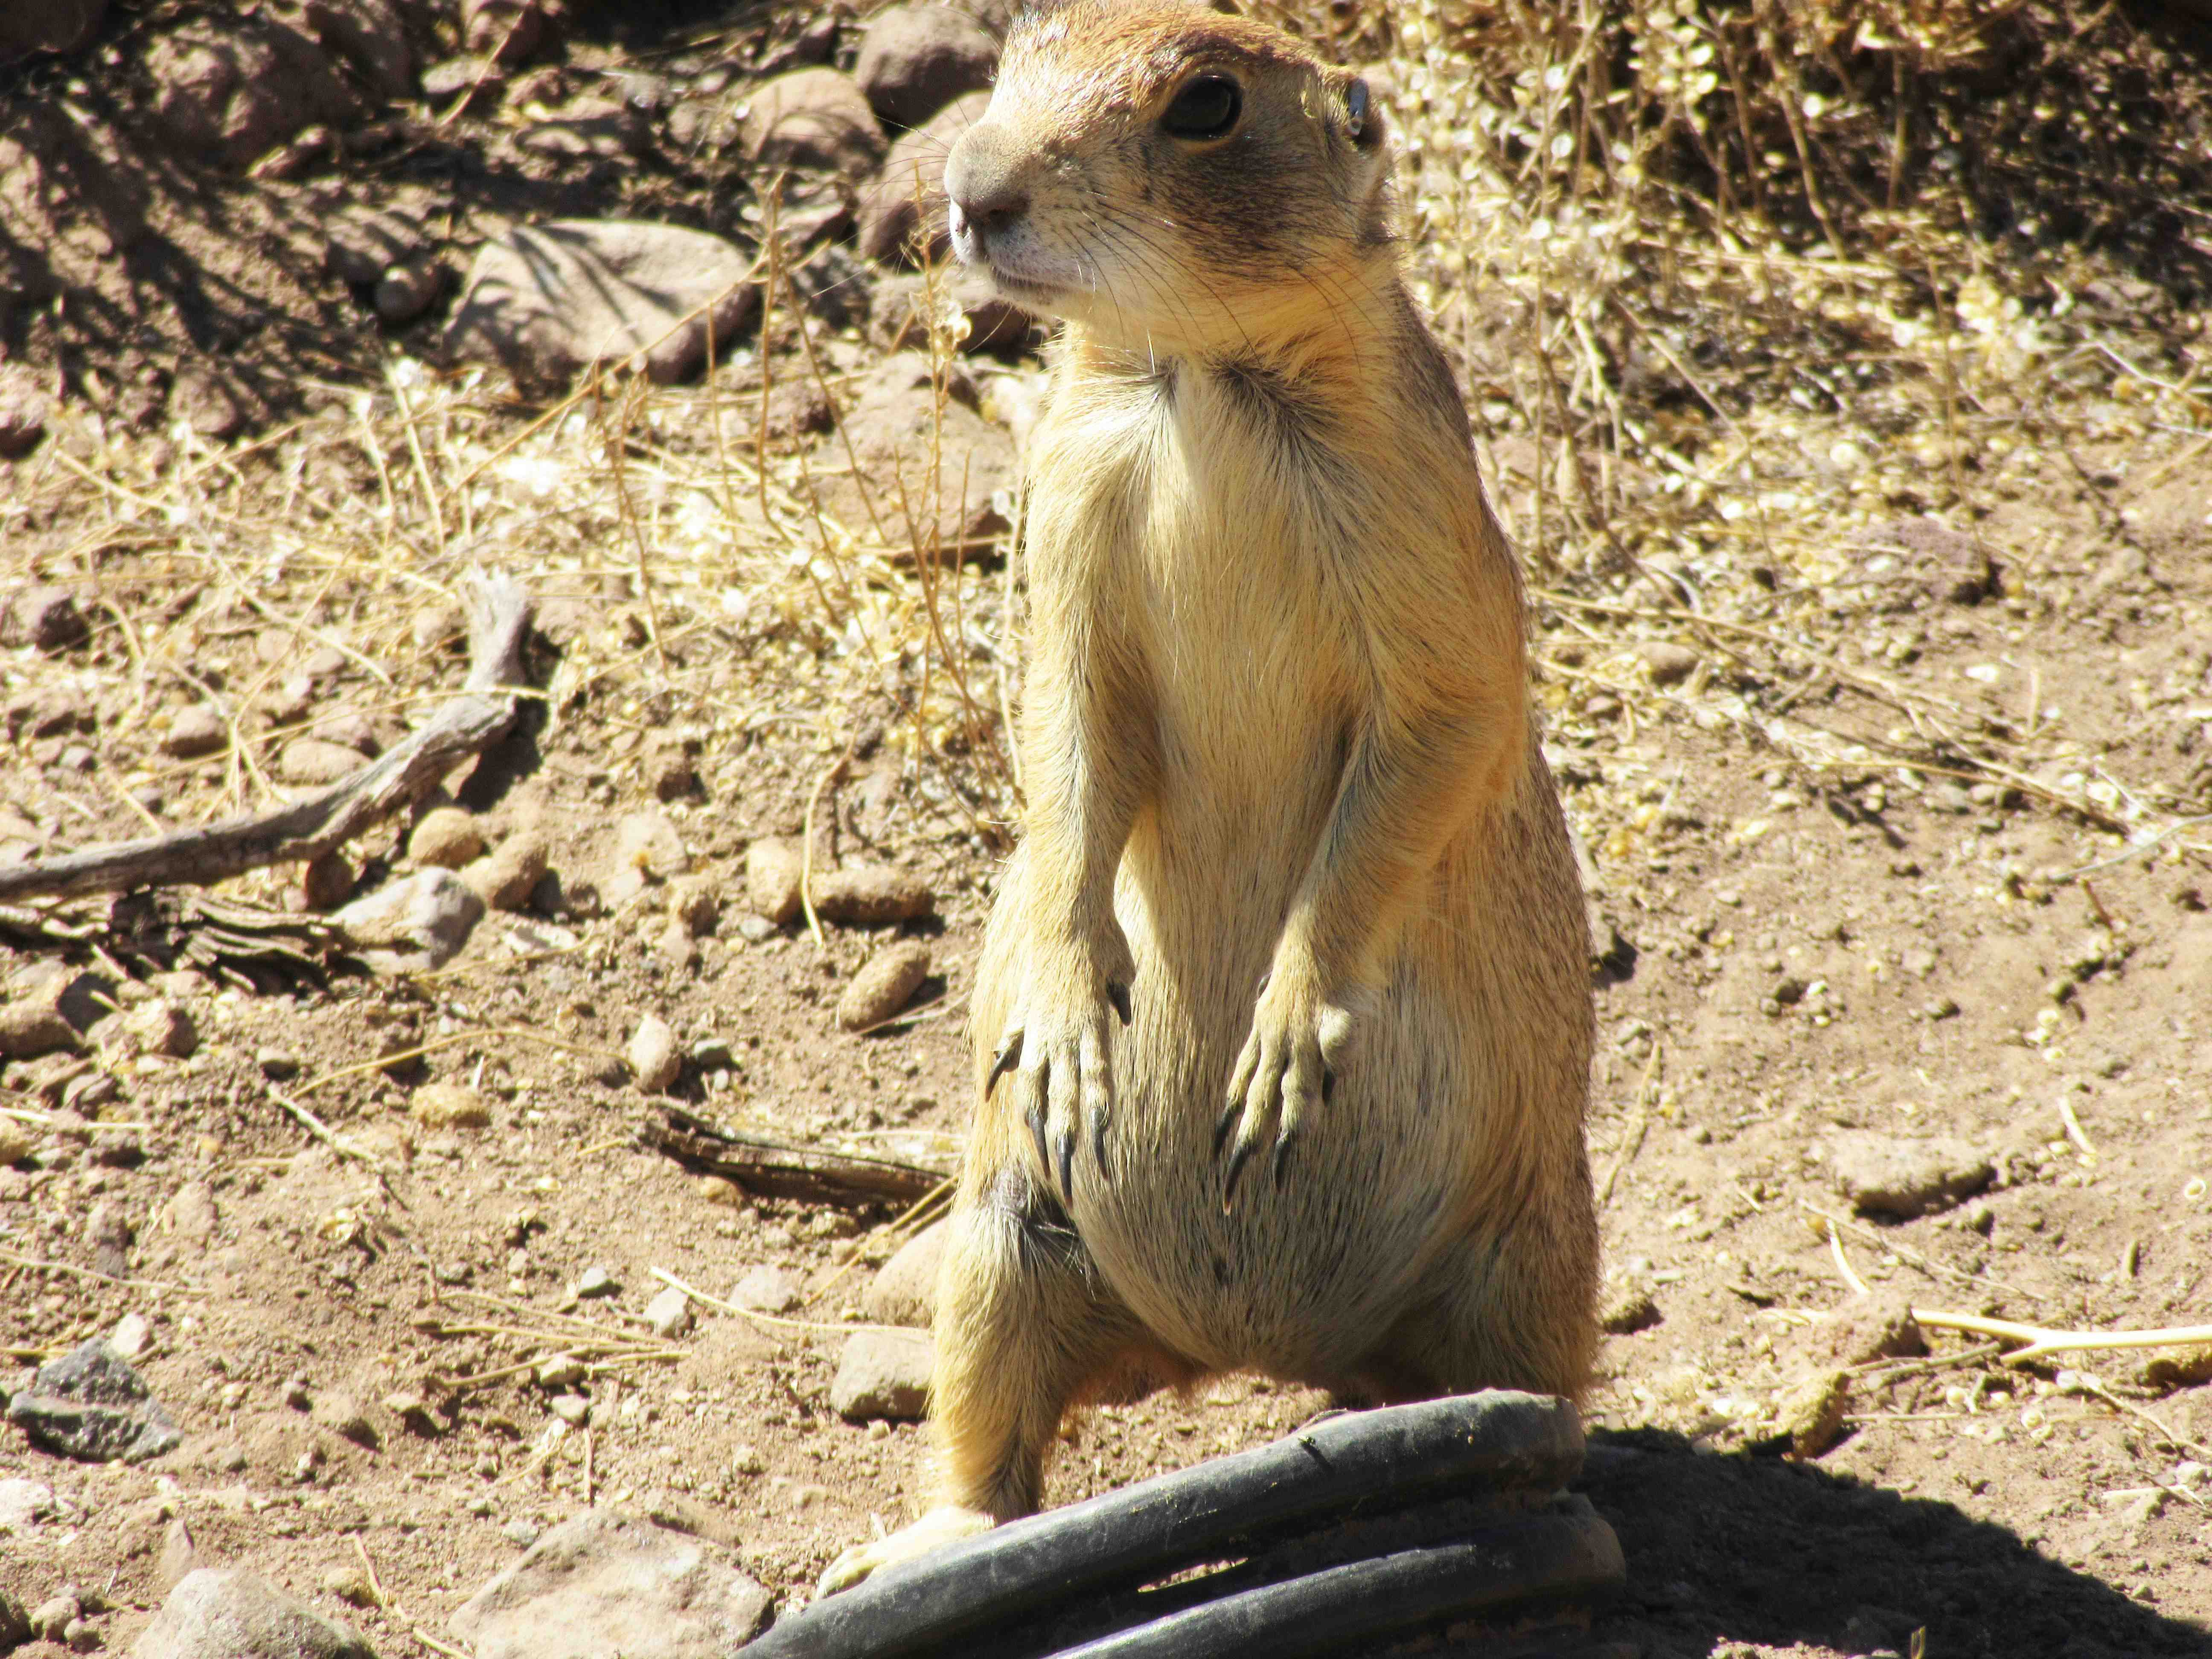 Utah prairie dogs this summer being relocated by the Division of Wildlife Resources, location and date unspecified | Photo by Melissa Wagner, St. George News